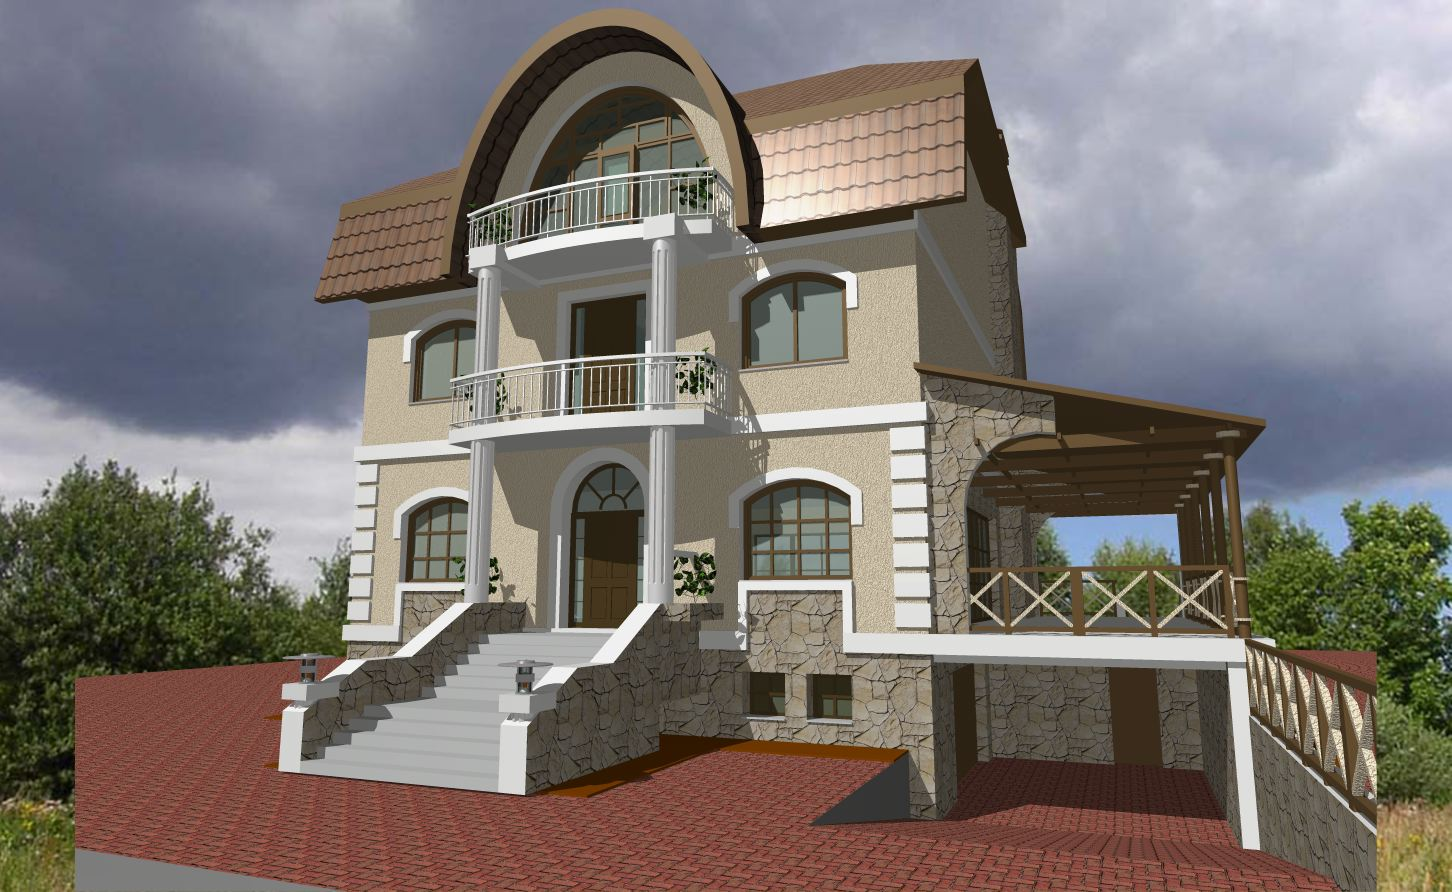 Foundation dezin decor exterior elevations view 39 s for House exterior ideas